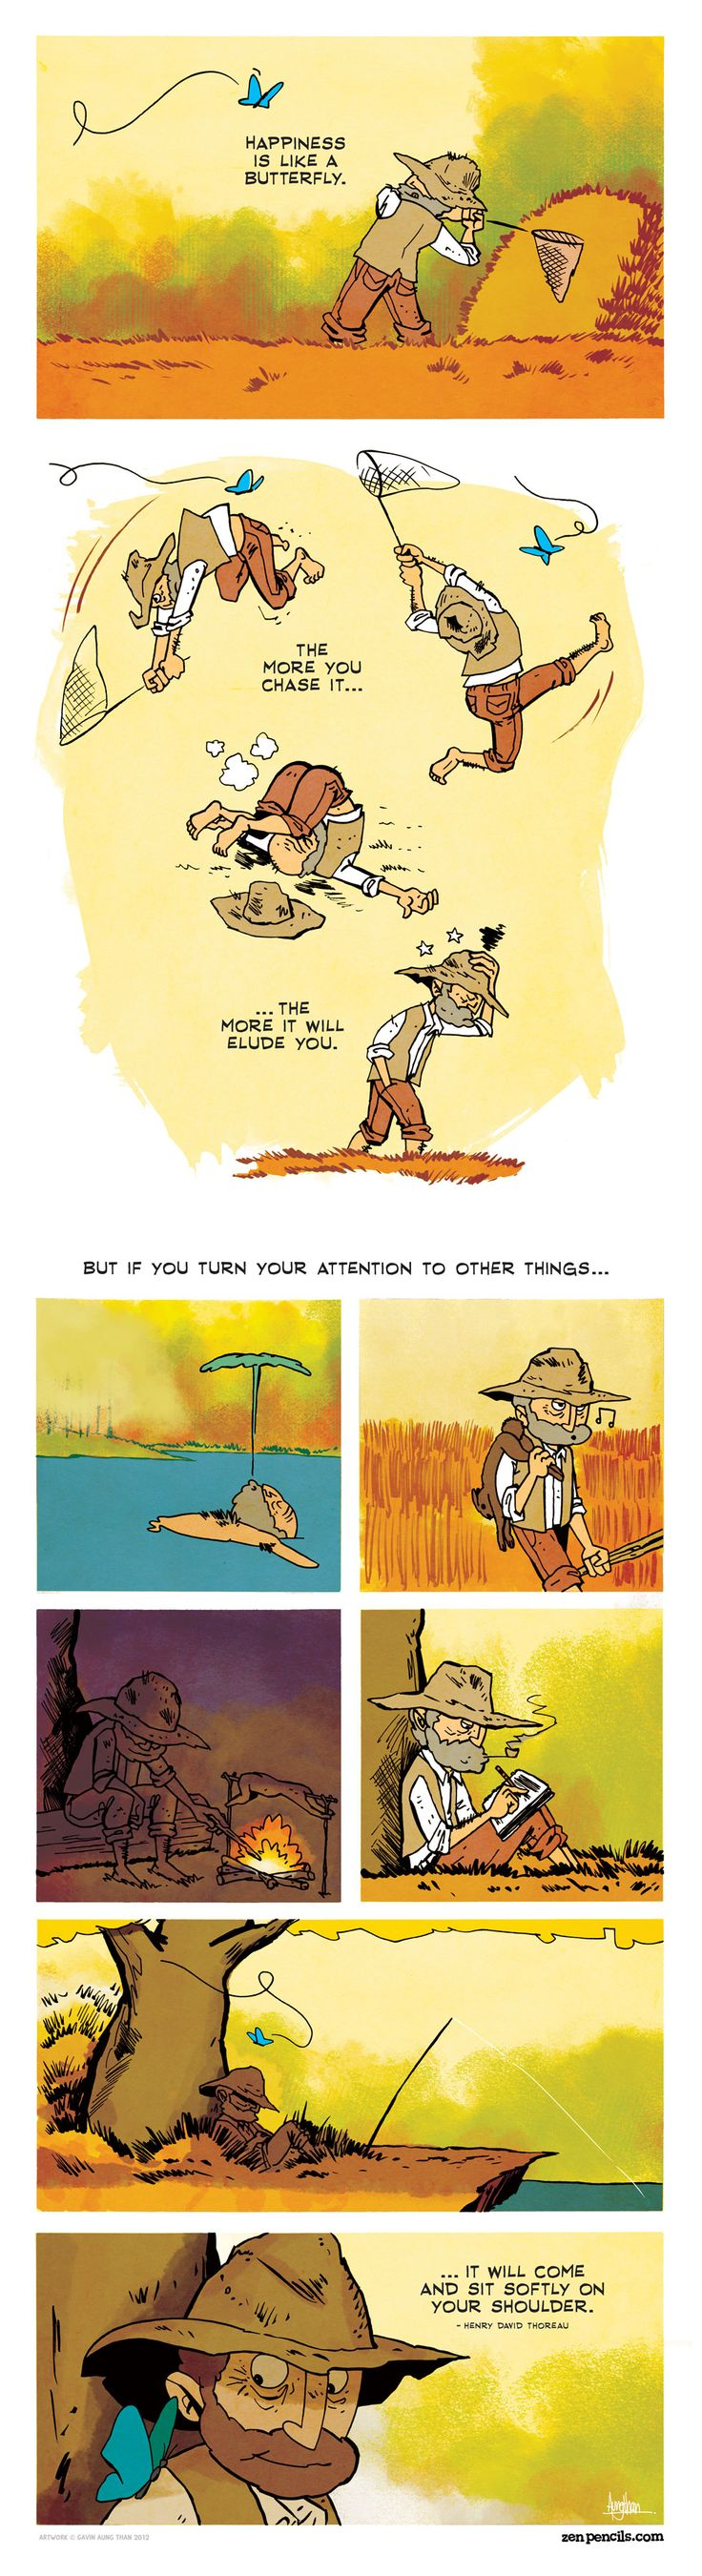 ZEN PENCILS » 80. HENRY DAVID THOREAU: On happiness